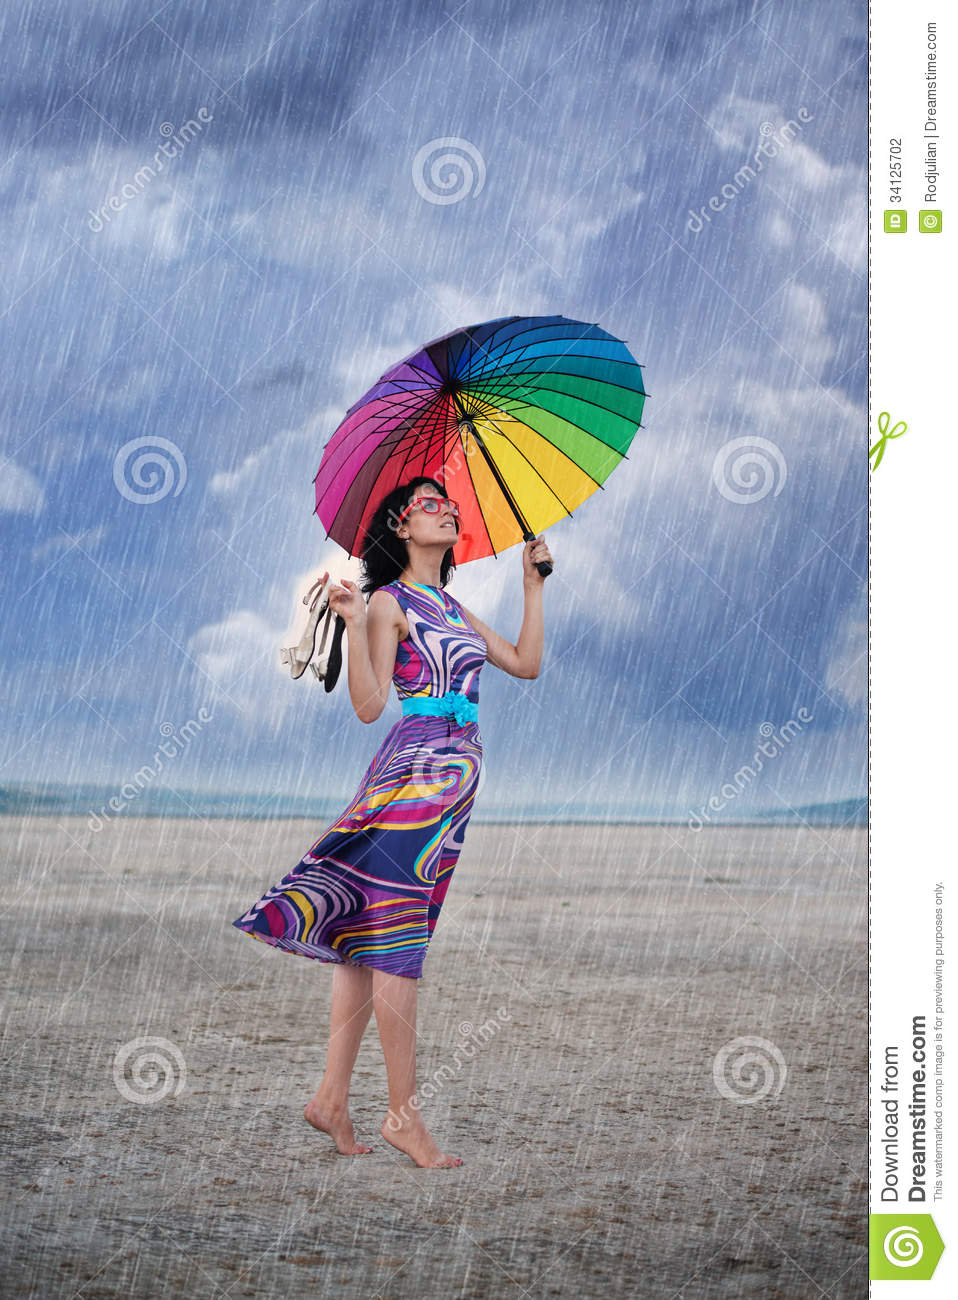 Woman With Colorful Umbrella Under The Rain Stock Photo - Image of ... for Colorful Umbrella Photography  8lpfiz